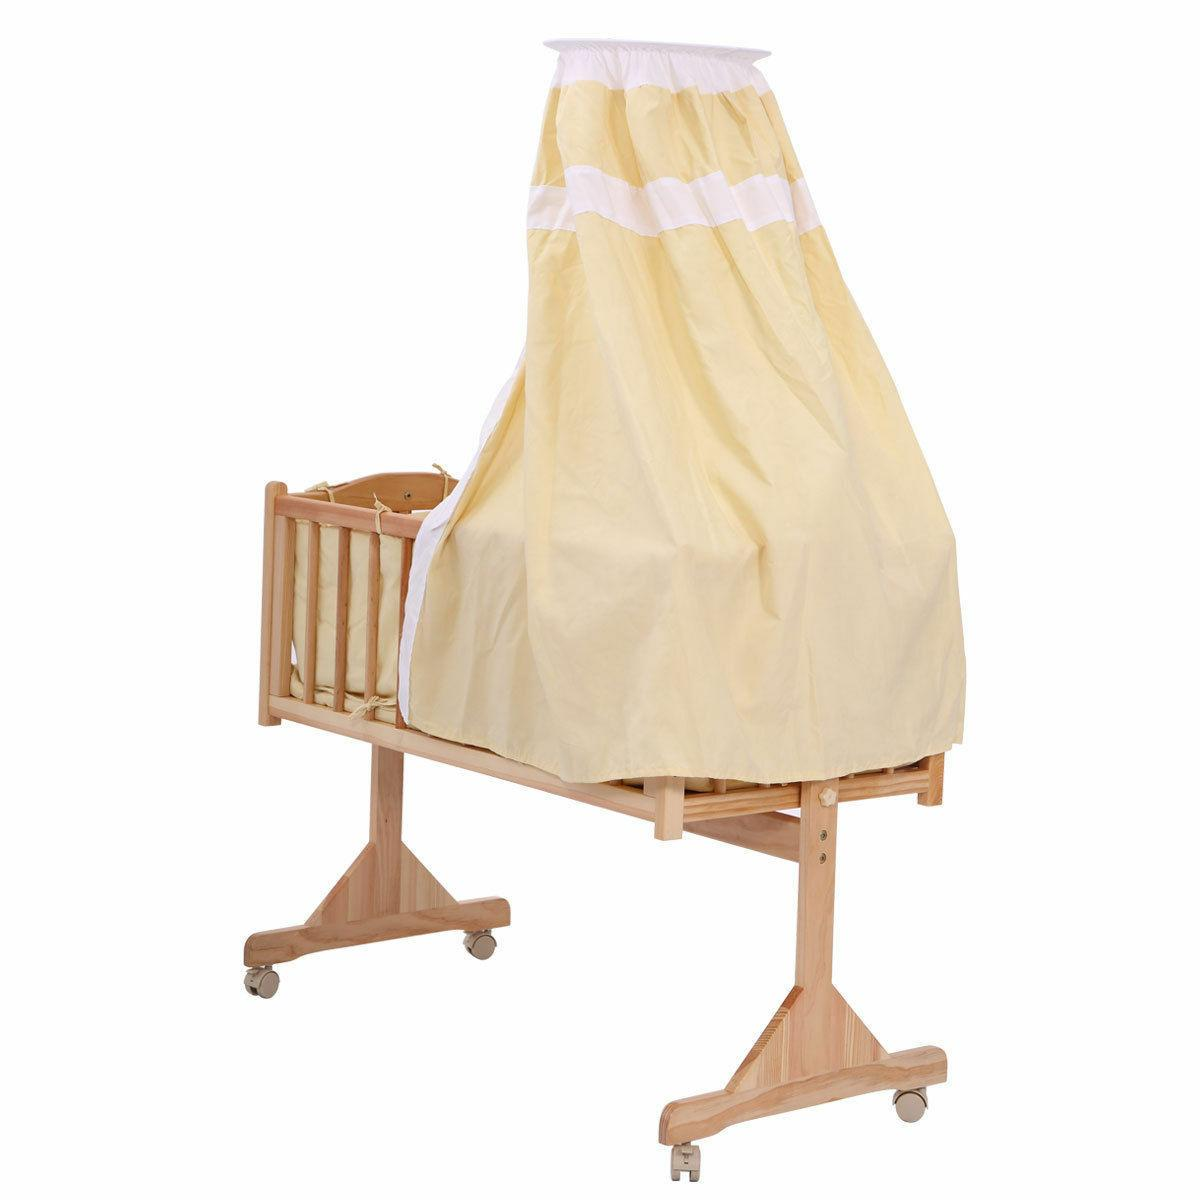 Pine Newborn Toddler Cradle Furniture